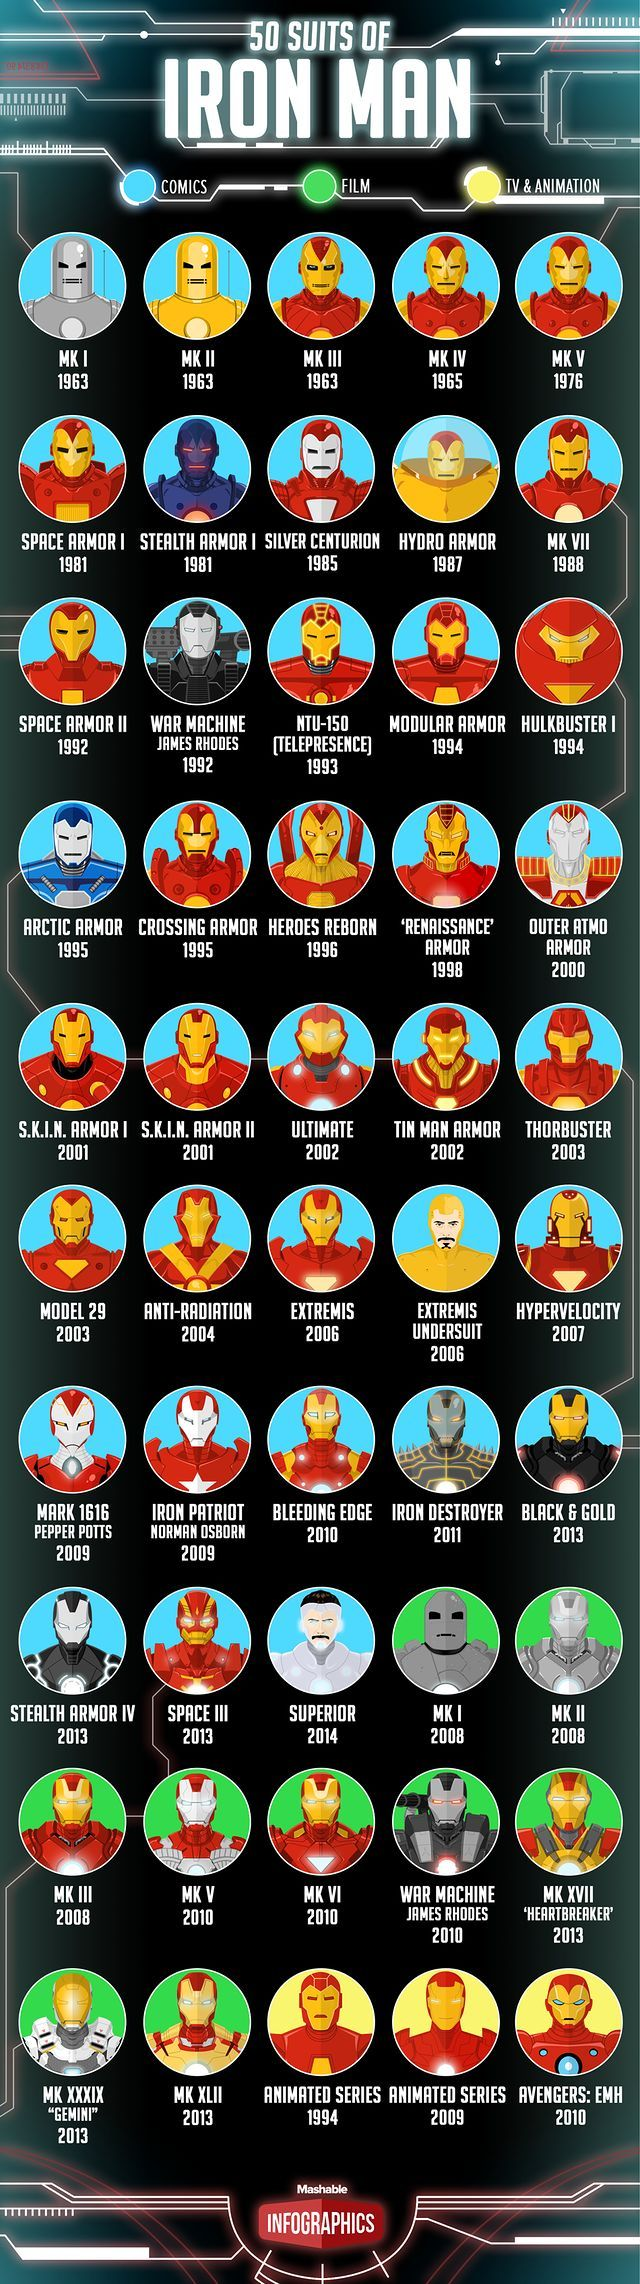 Check Out Some Prolific Pop Culture Profiles Of Iron Man, Batman, Spider-Man & Doctor Who | moviepilot.com